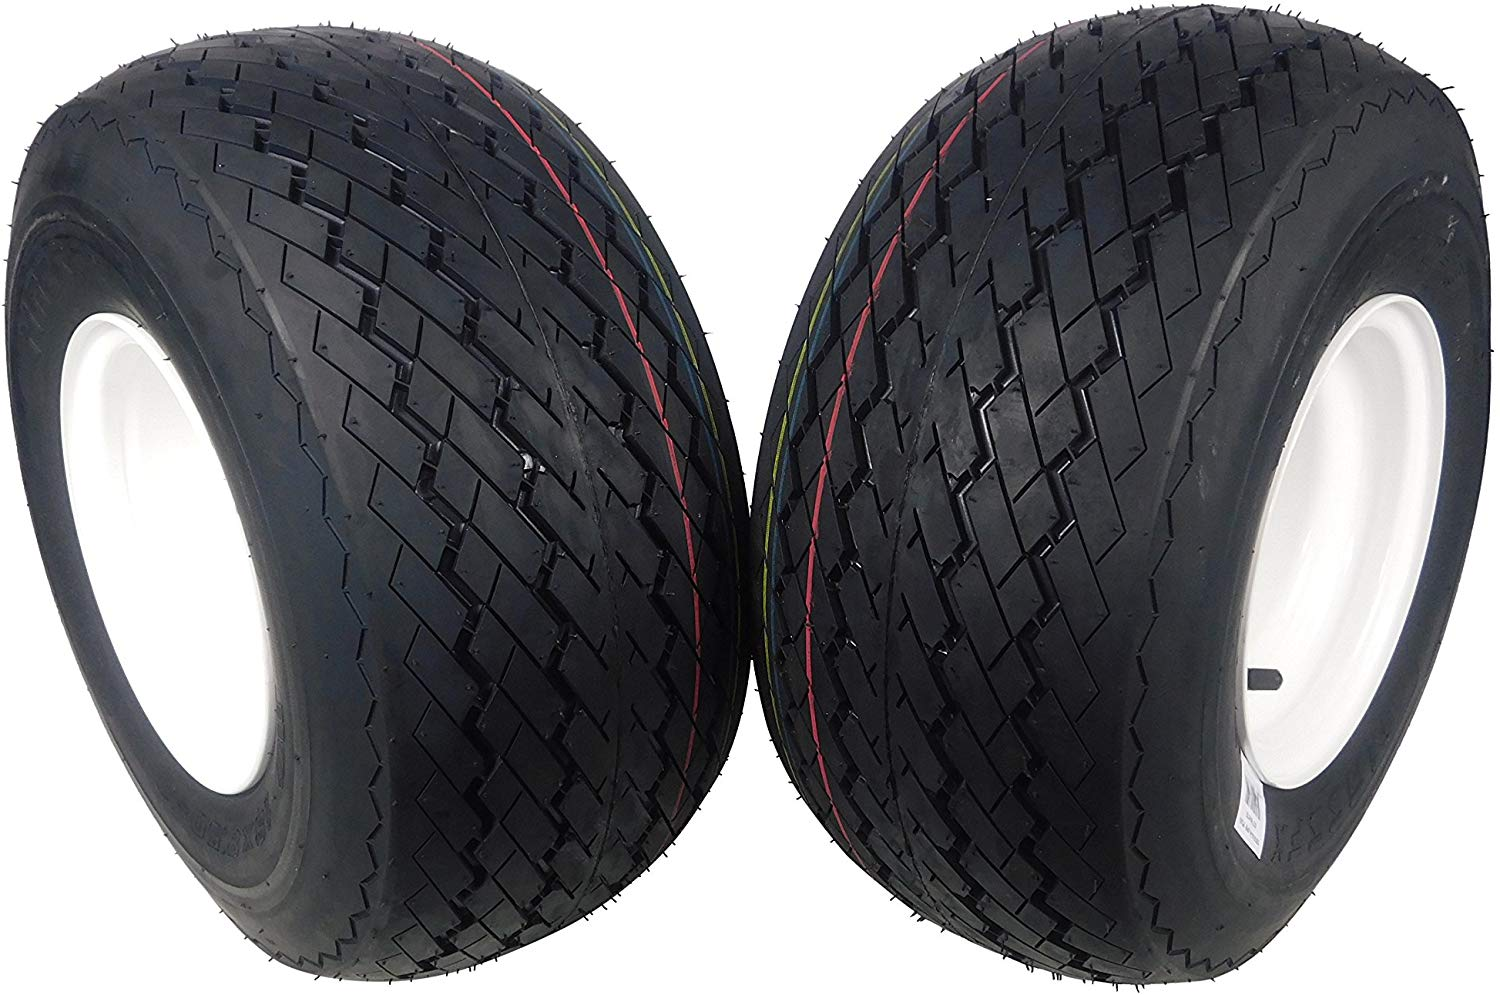 MASSFX Wheel & Tire for Golf Carts.